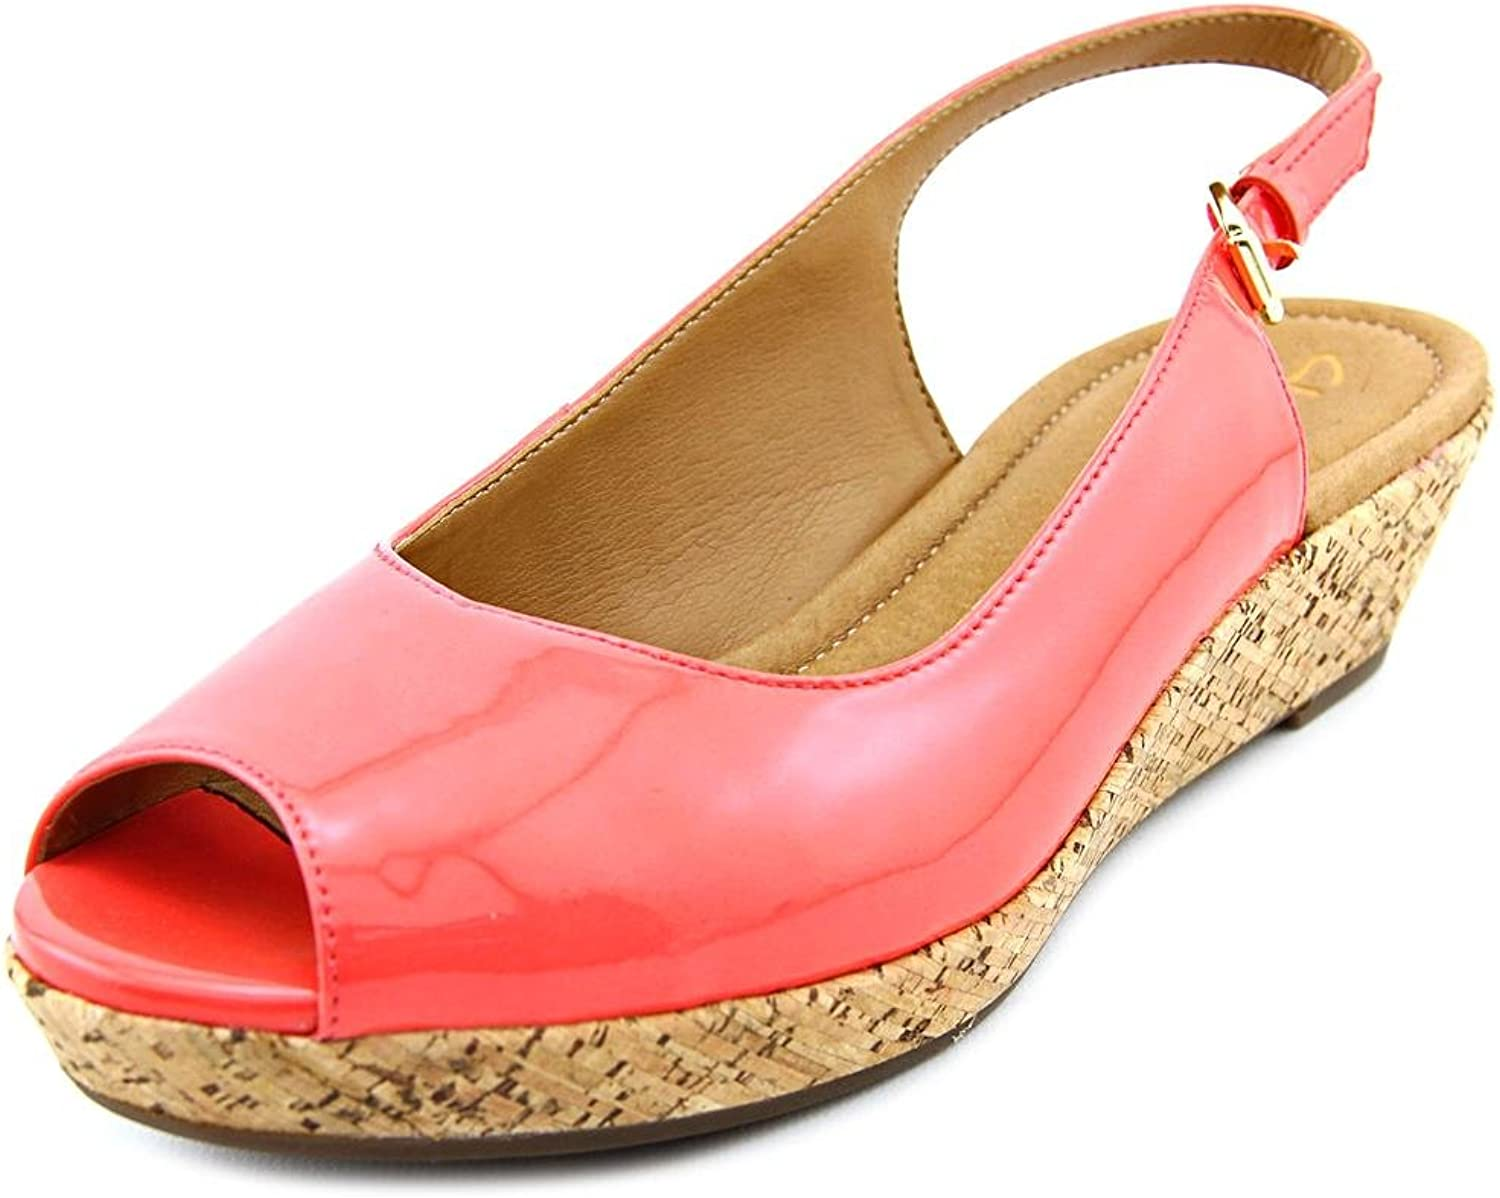 Clarks Women's Orlena Currant Wedge Sandal Coral Style 09198